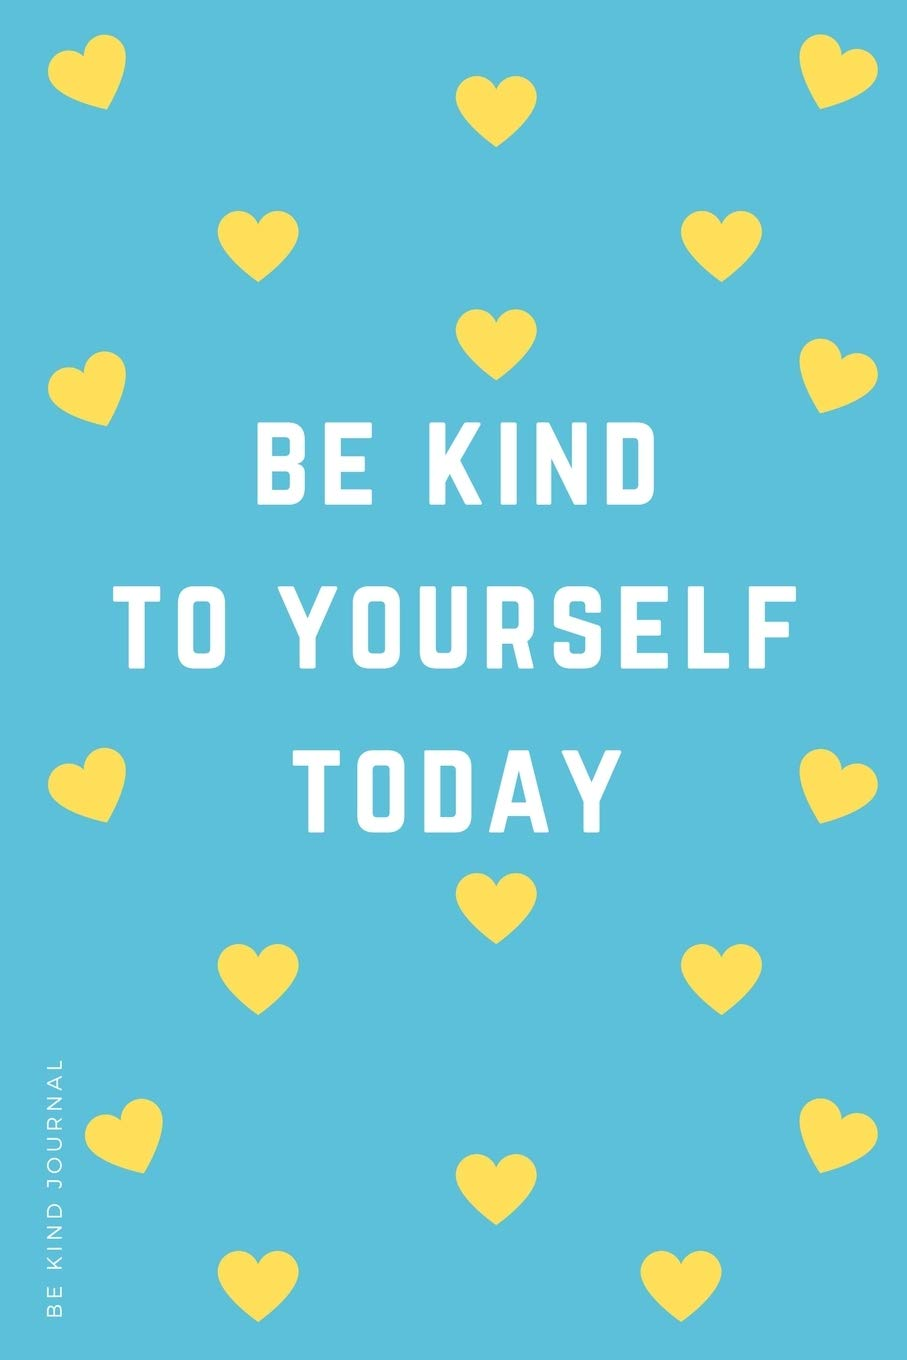 Positive wellbeing and being kind to yourself